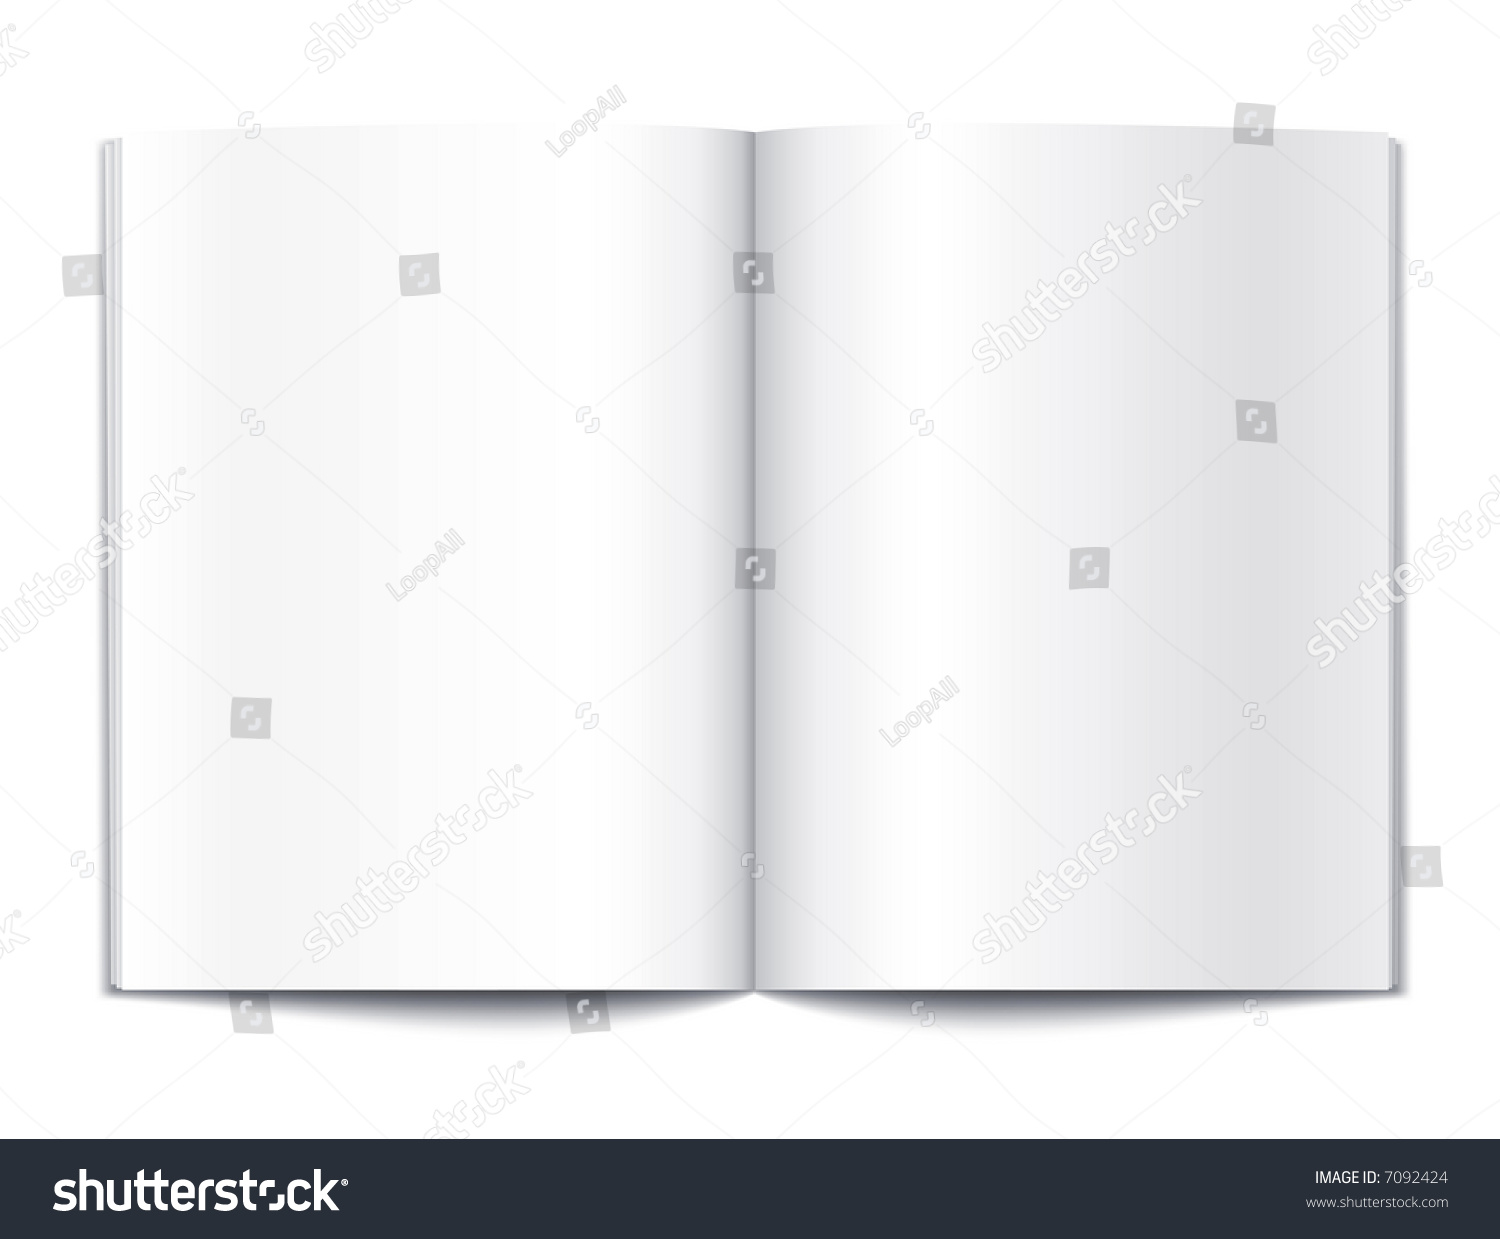 Cover page designs for school projects note book cover page design -  Note Book Pages Design Template Vector Illustration Preview Save To A Lightbox